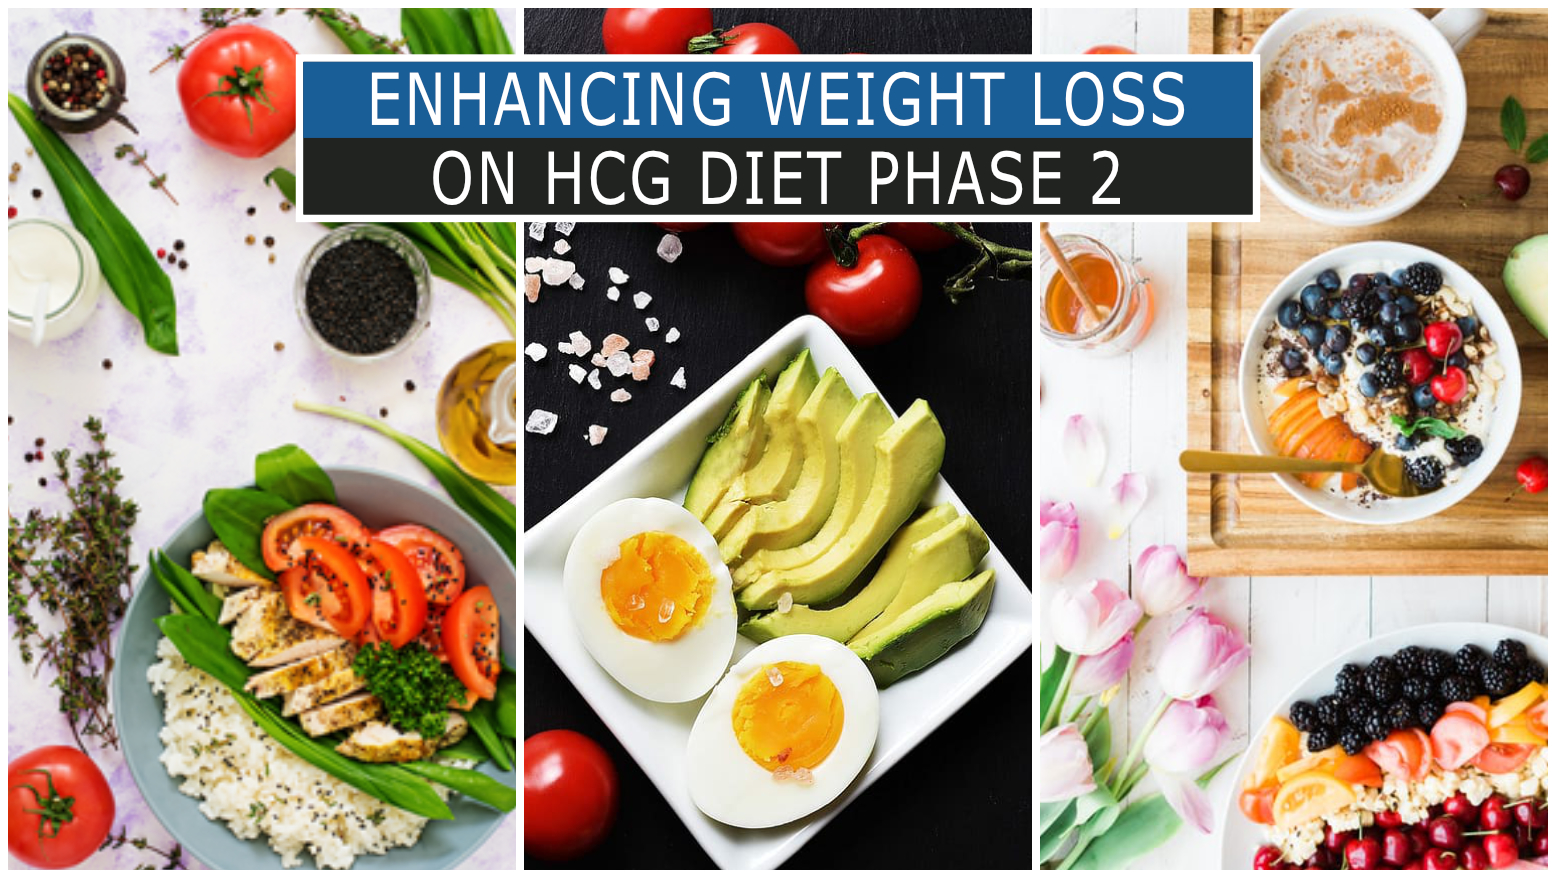 ENHANCING WEIGHT LOSS ON HCG DIET PHASE 2